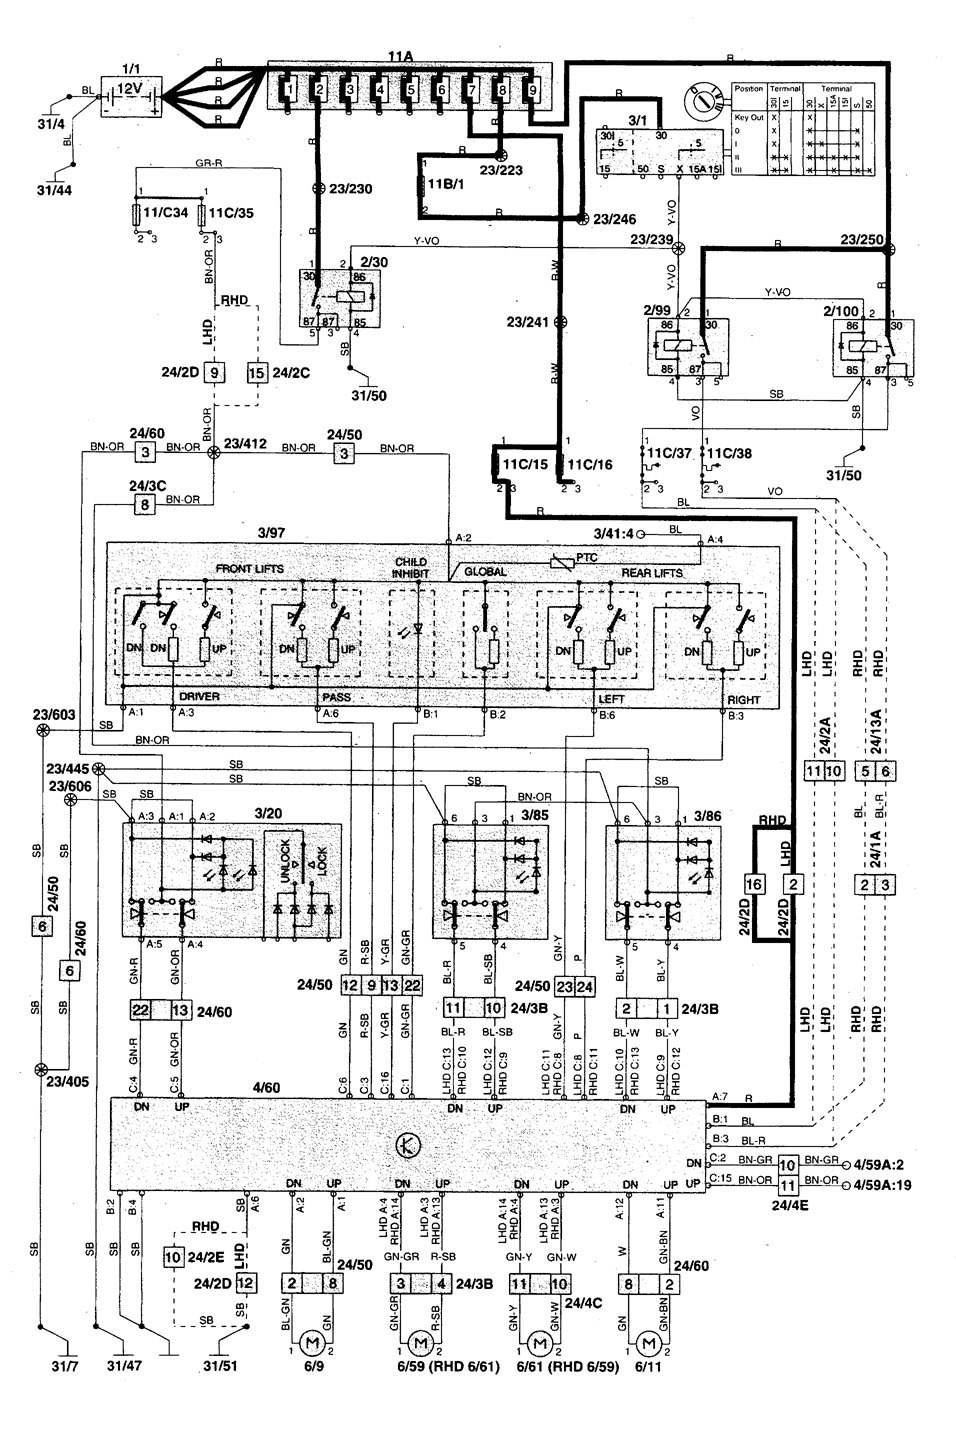 1999 Volvo V70 Fuse Box Automotive Wiring Diagrams Nissan 1800 Diagram S70 1998 2000 Power Windows Carknowledge Rh Info S80